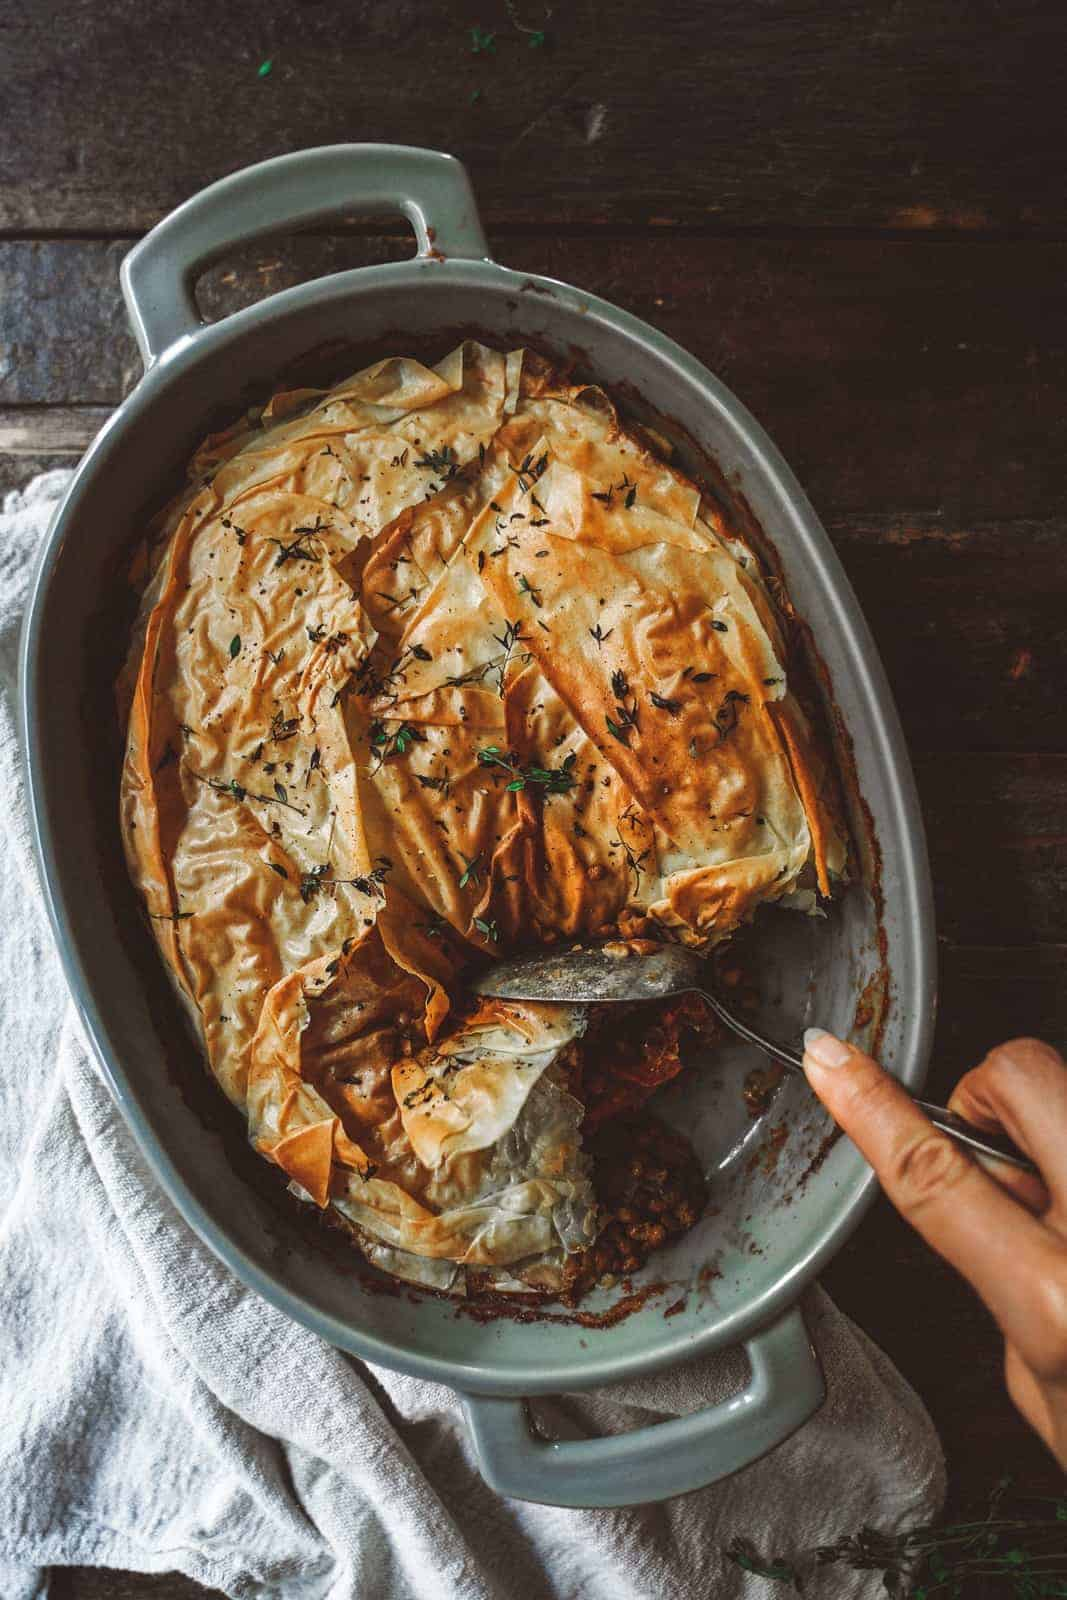 Looking for one of the most comforting recipes to make this September? This phyllo pastry casserole is just that. Big casserole dish on wood table with spoon digging into casserole.